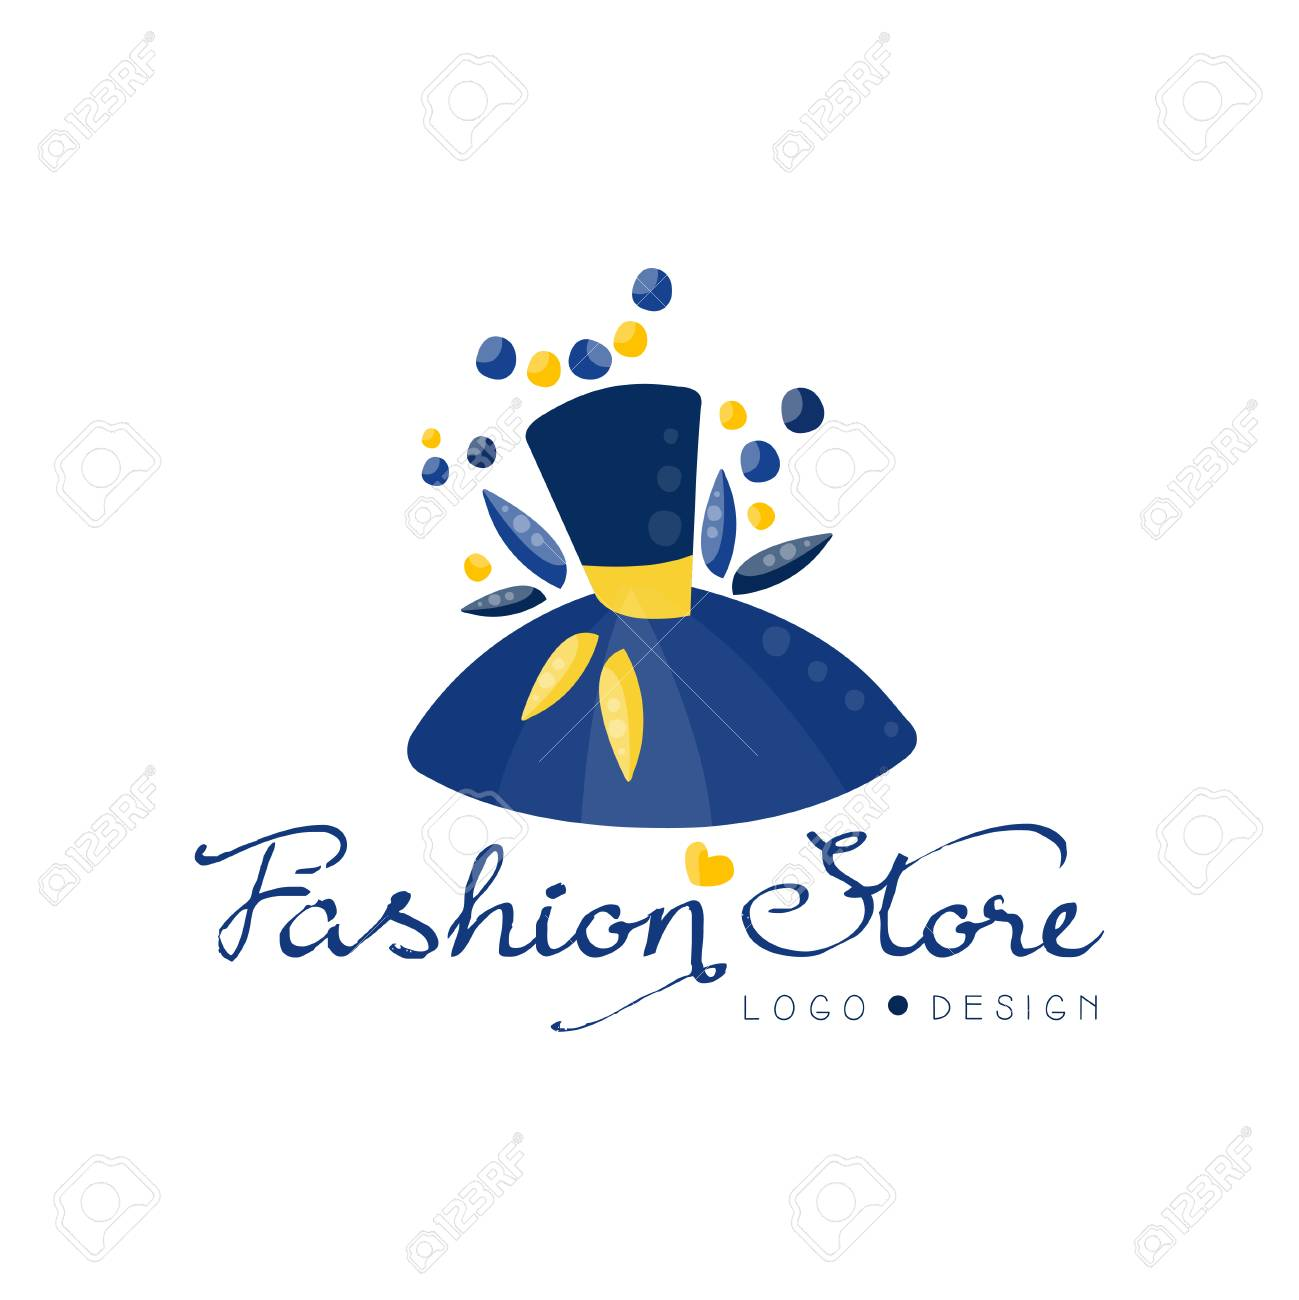 Fashion Store Logo Design Template Clothes Shop Beauty Salon Royalty Free Cliparts Vectors And Stock Illustration Image 115657821